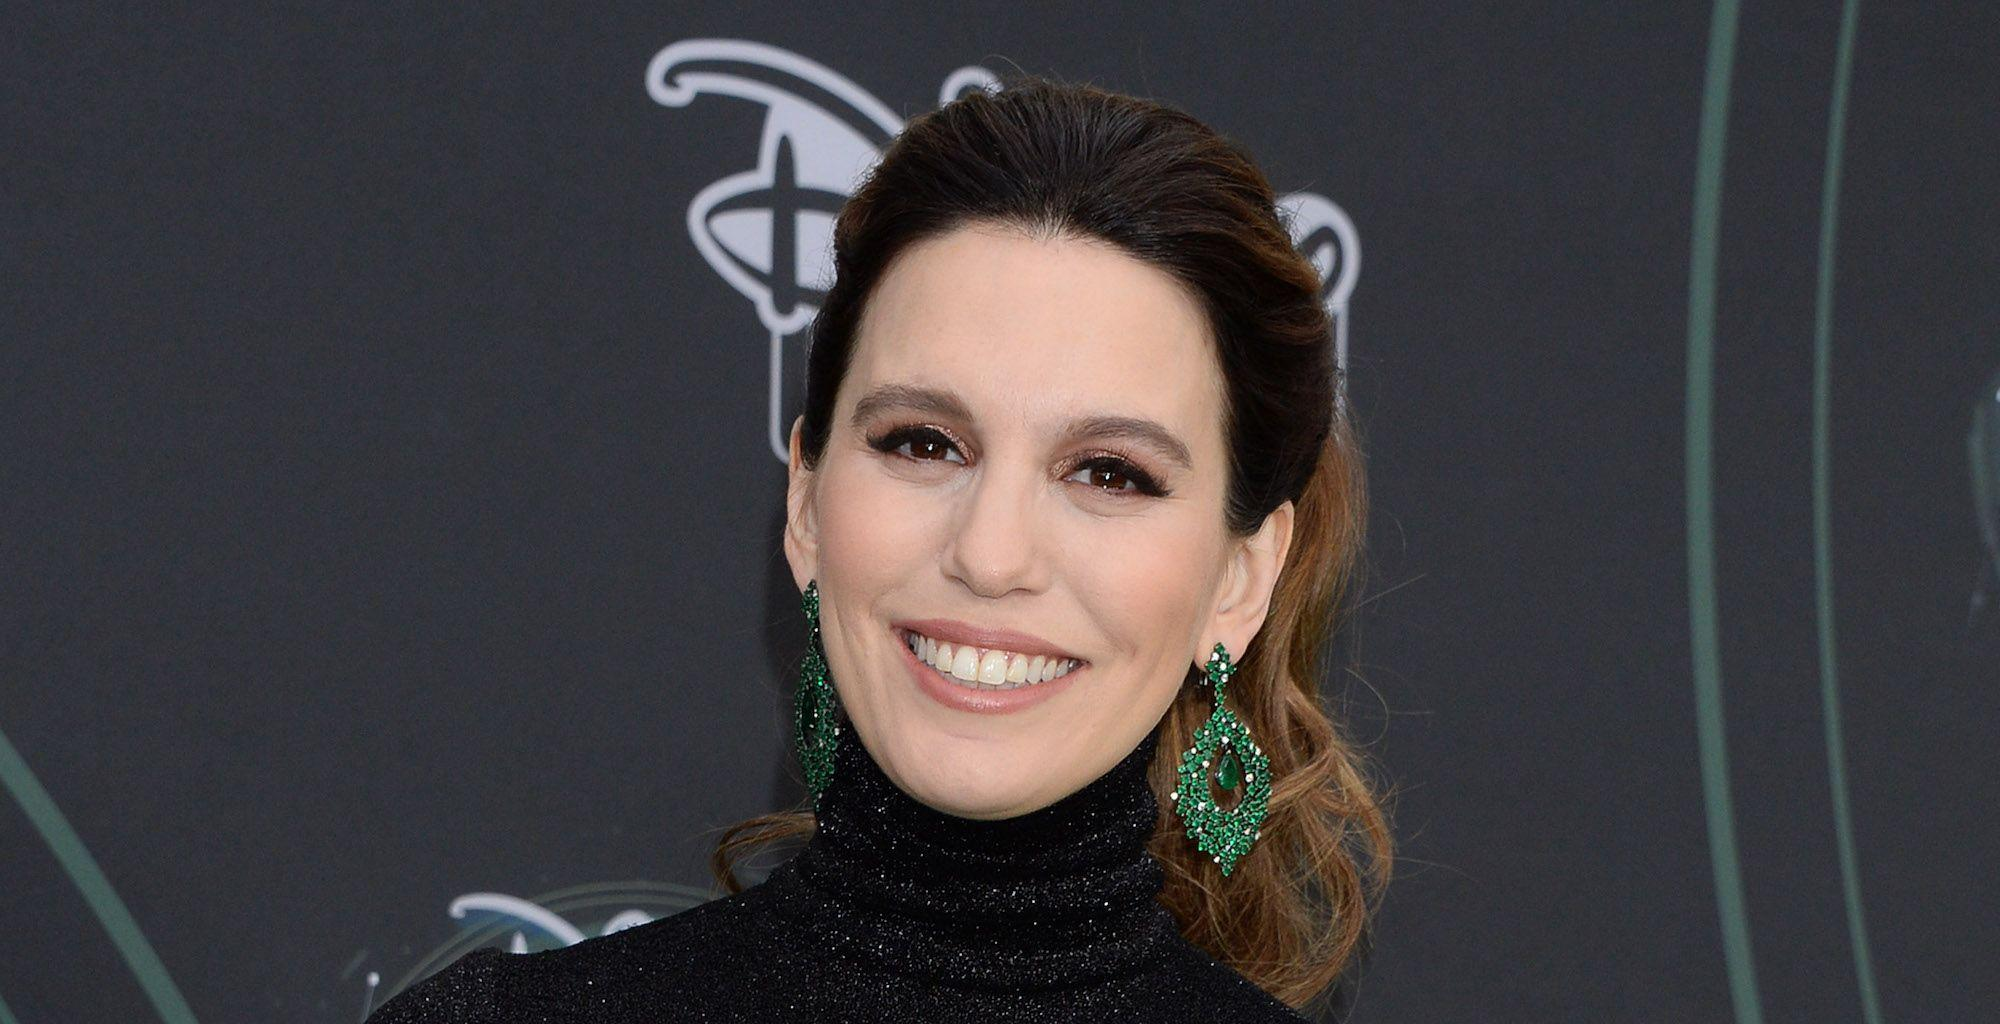 Christy Carlson Romano Gets Candid About Her Drinking And Self-Harm Problem After Her Disney Career